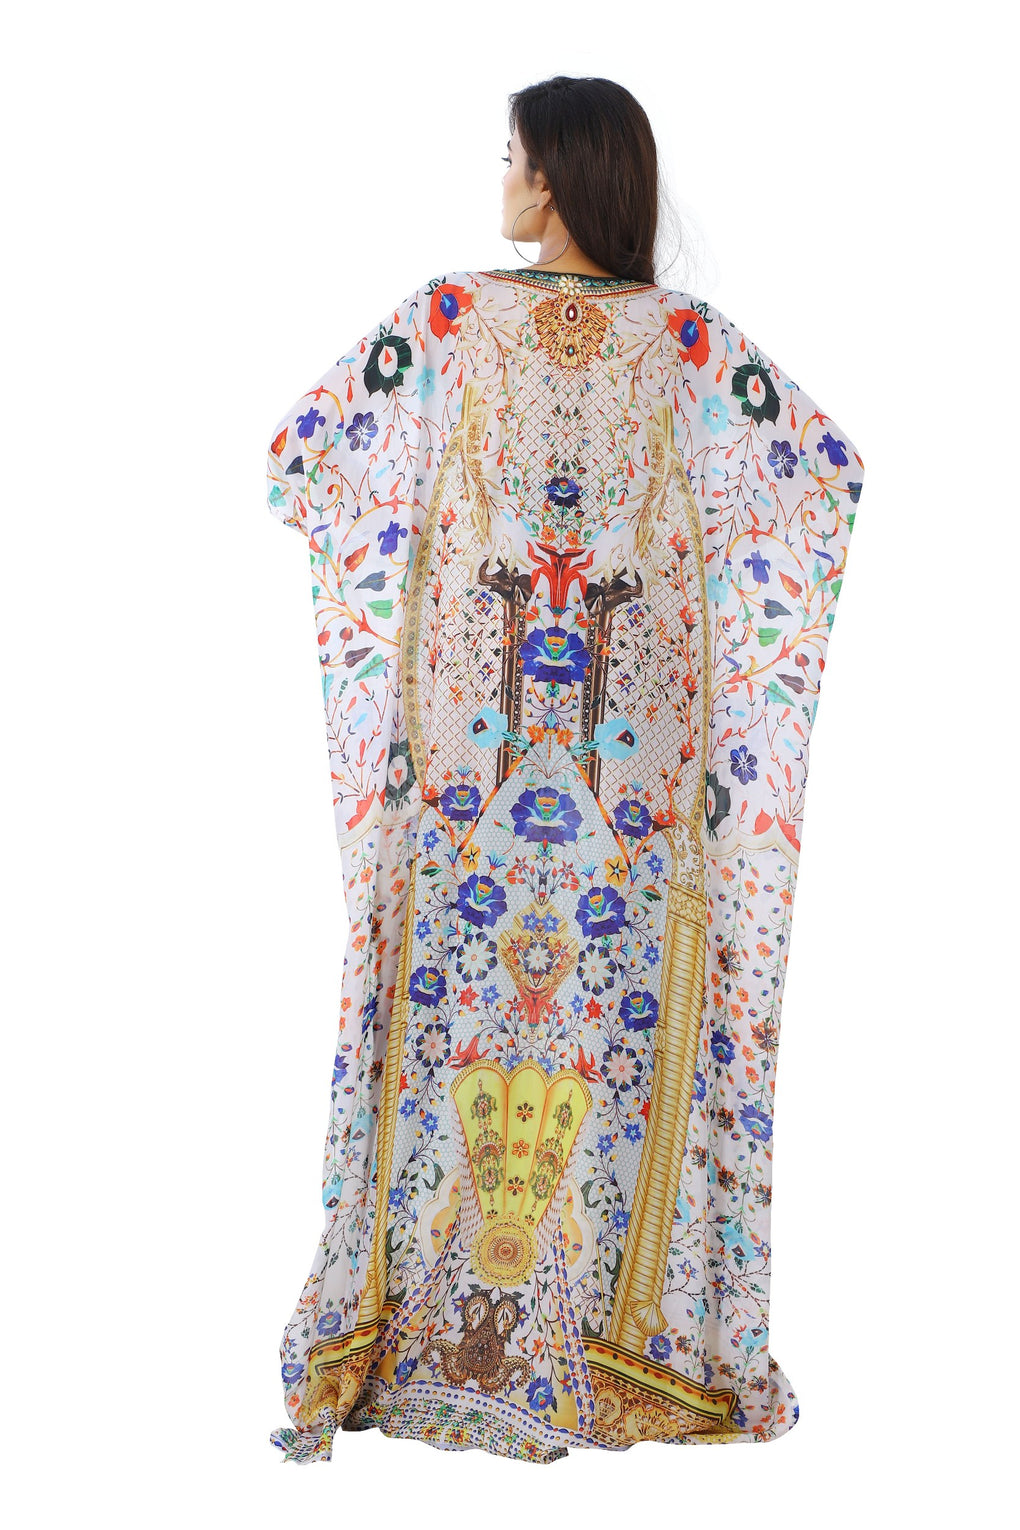 Compelling flowers decorative Geometric Patterns on Silk Kaftan with Kimono Sleeves - Silk kaftan